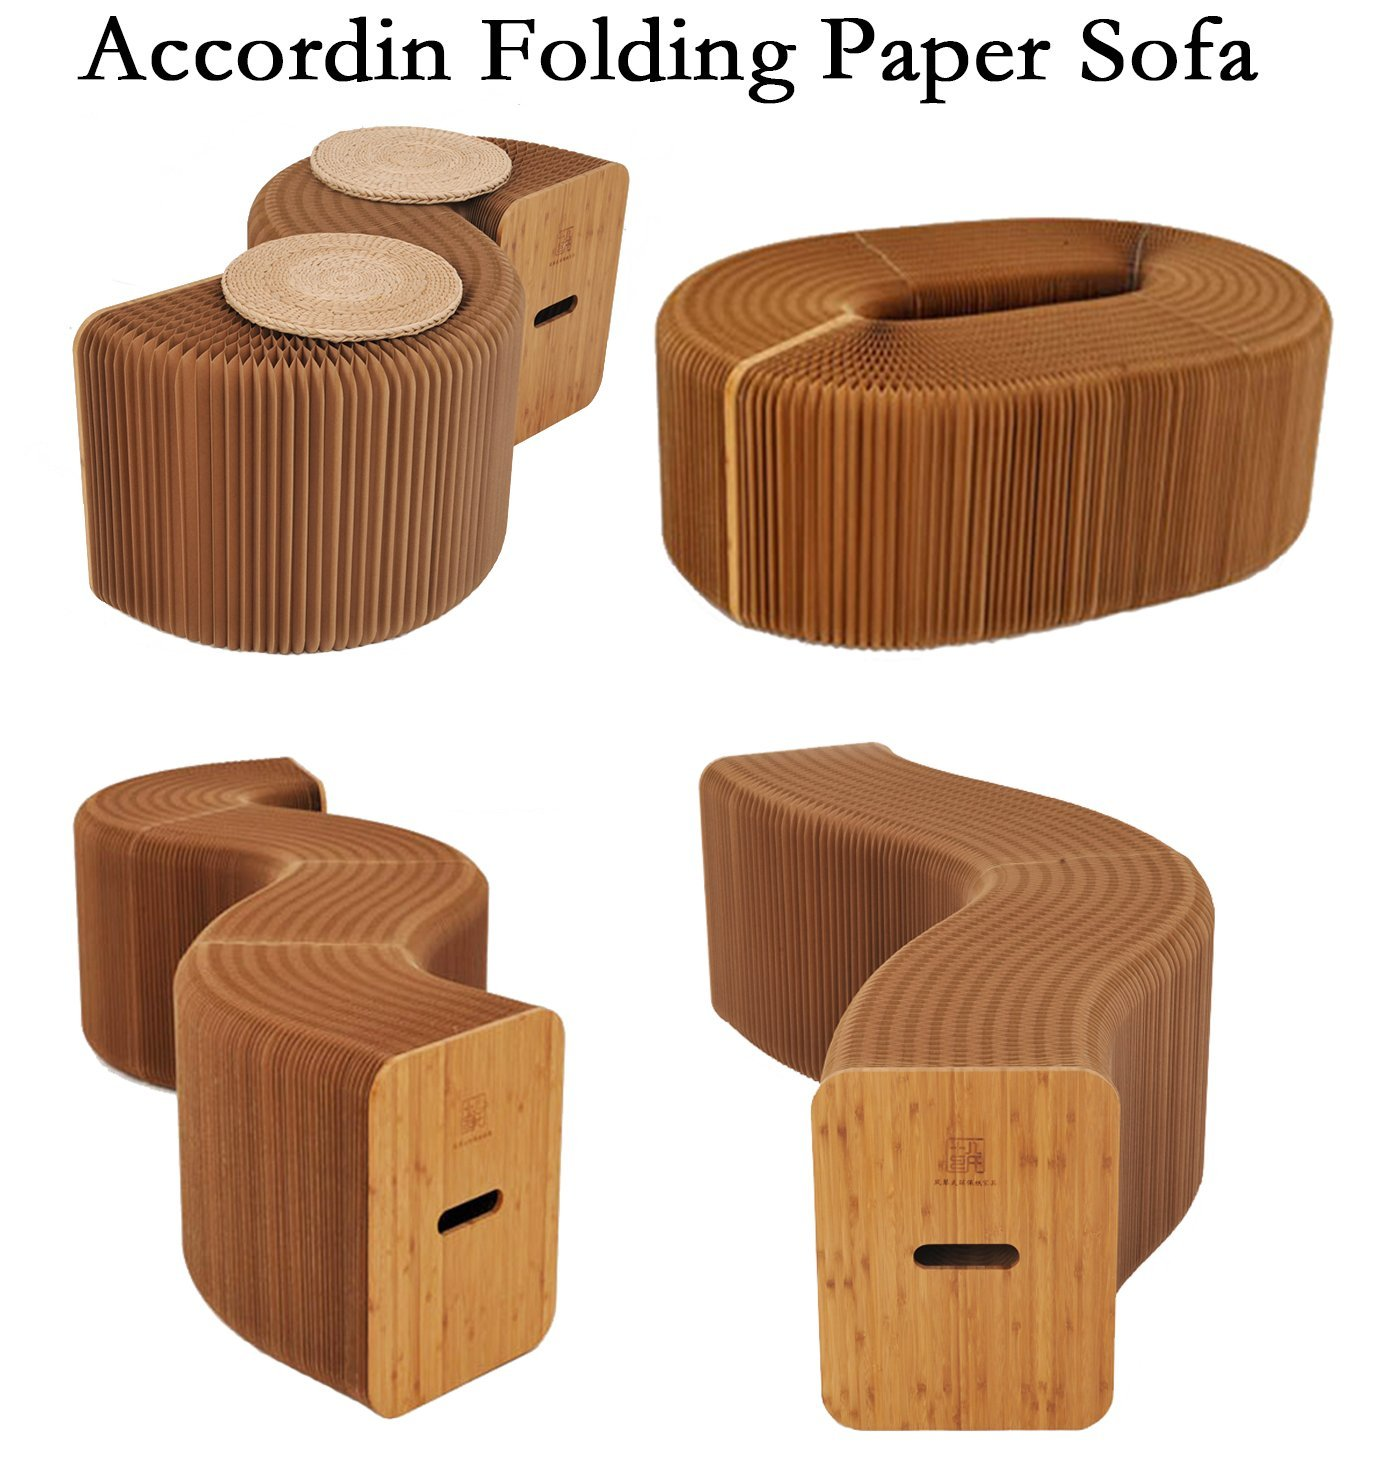 chair stool sofa how to recover dining room chairs home furniture softeating modern design accordin folding